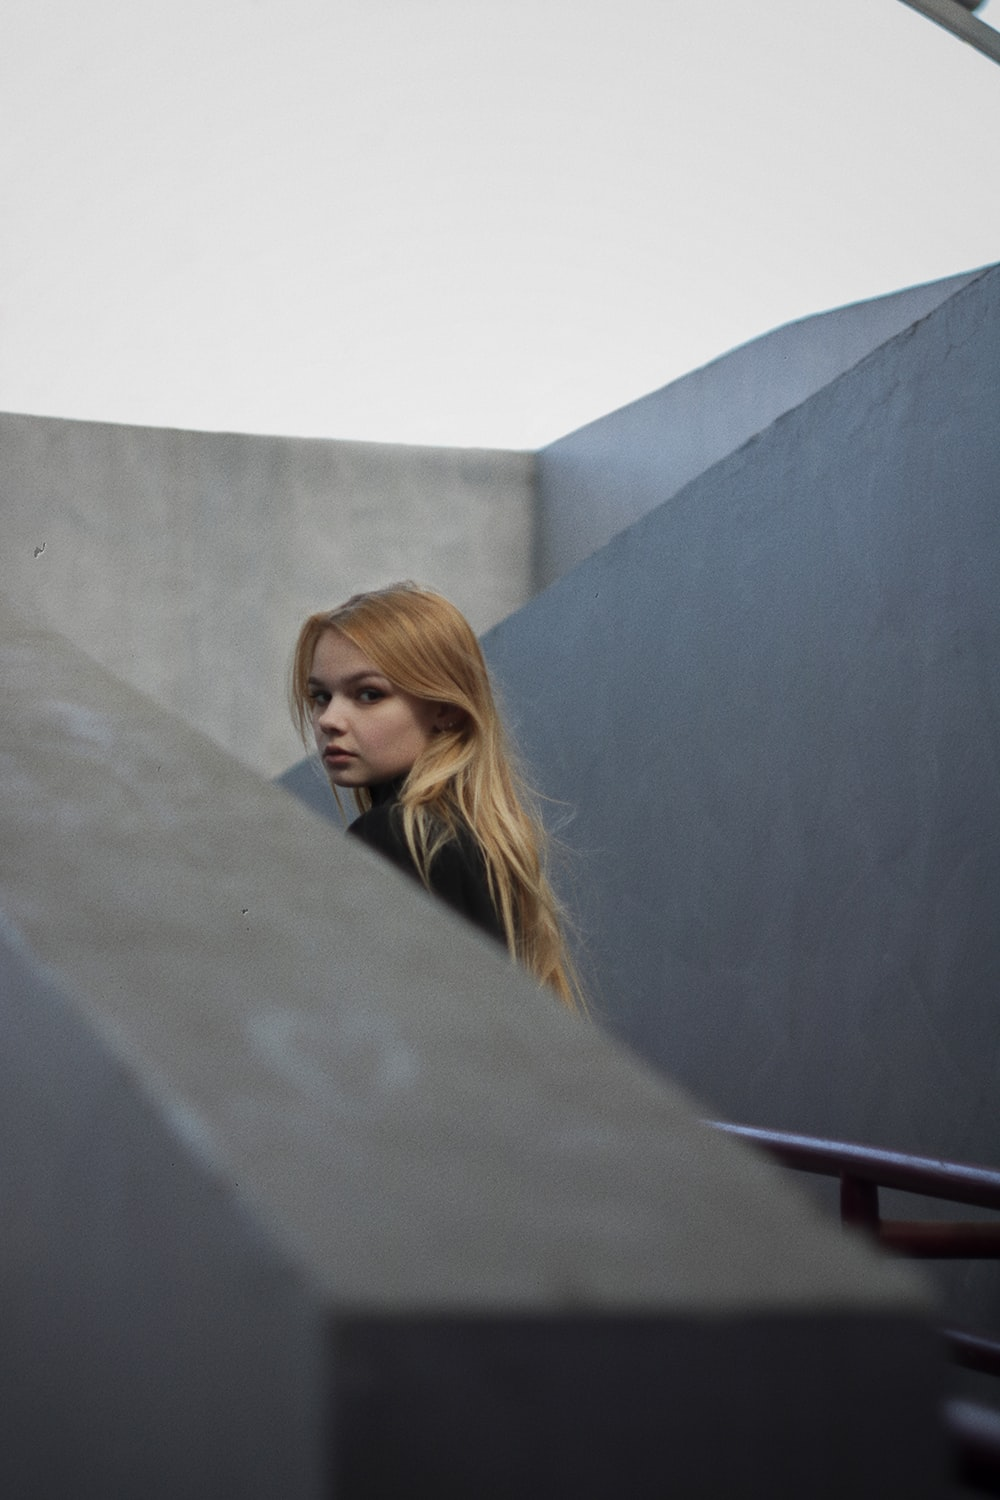 woman in black long sleeve shirt leaning on gray concrete wall during daytime